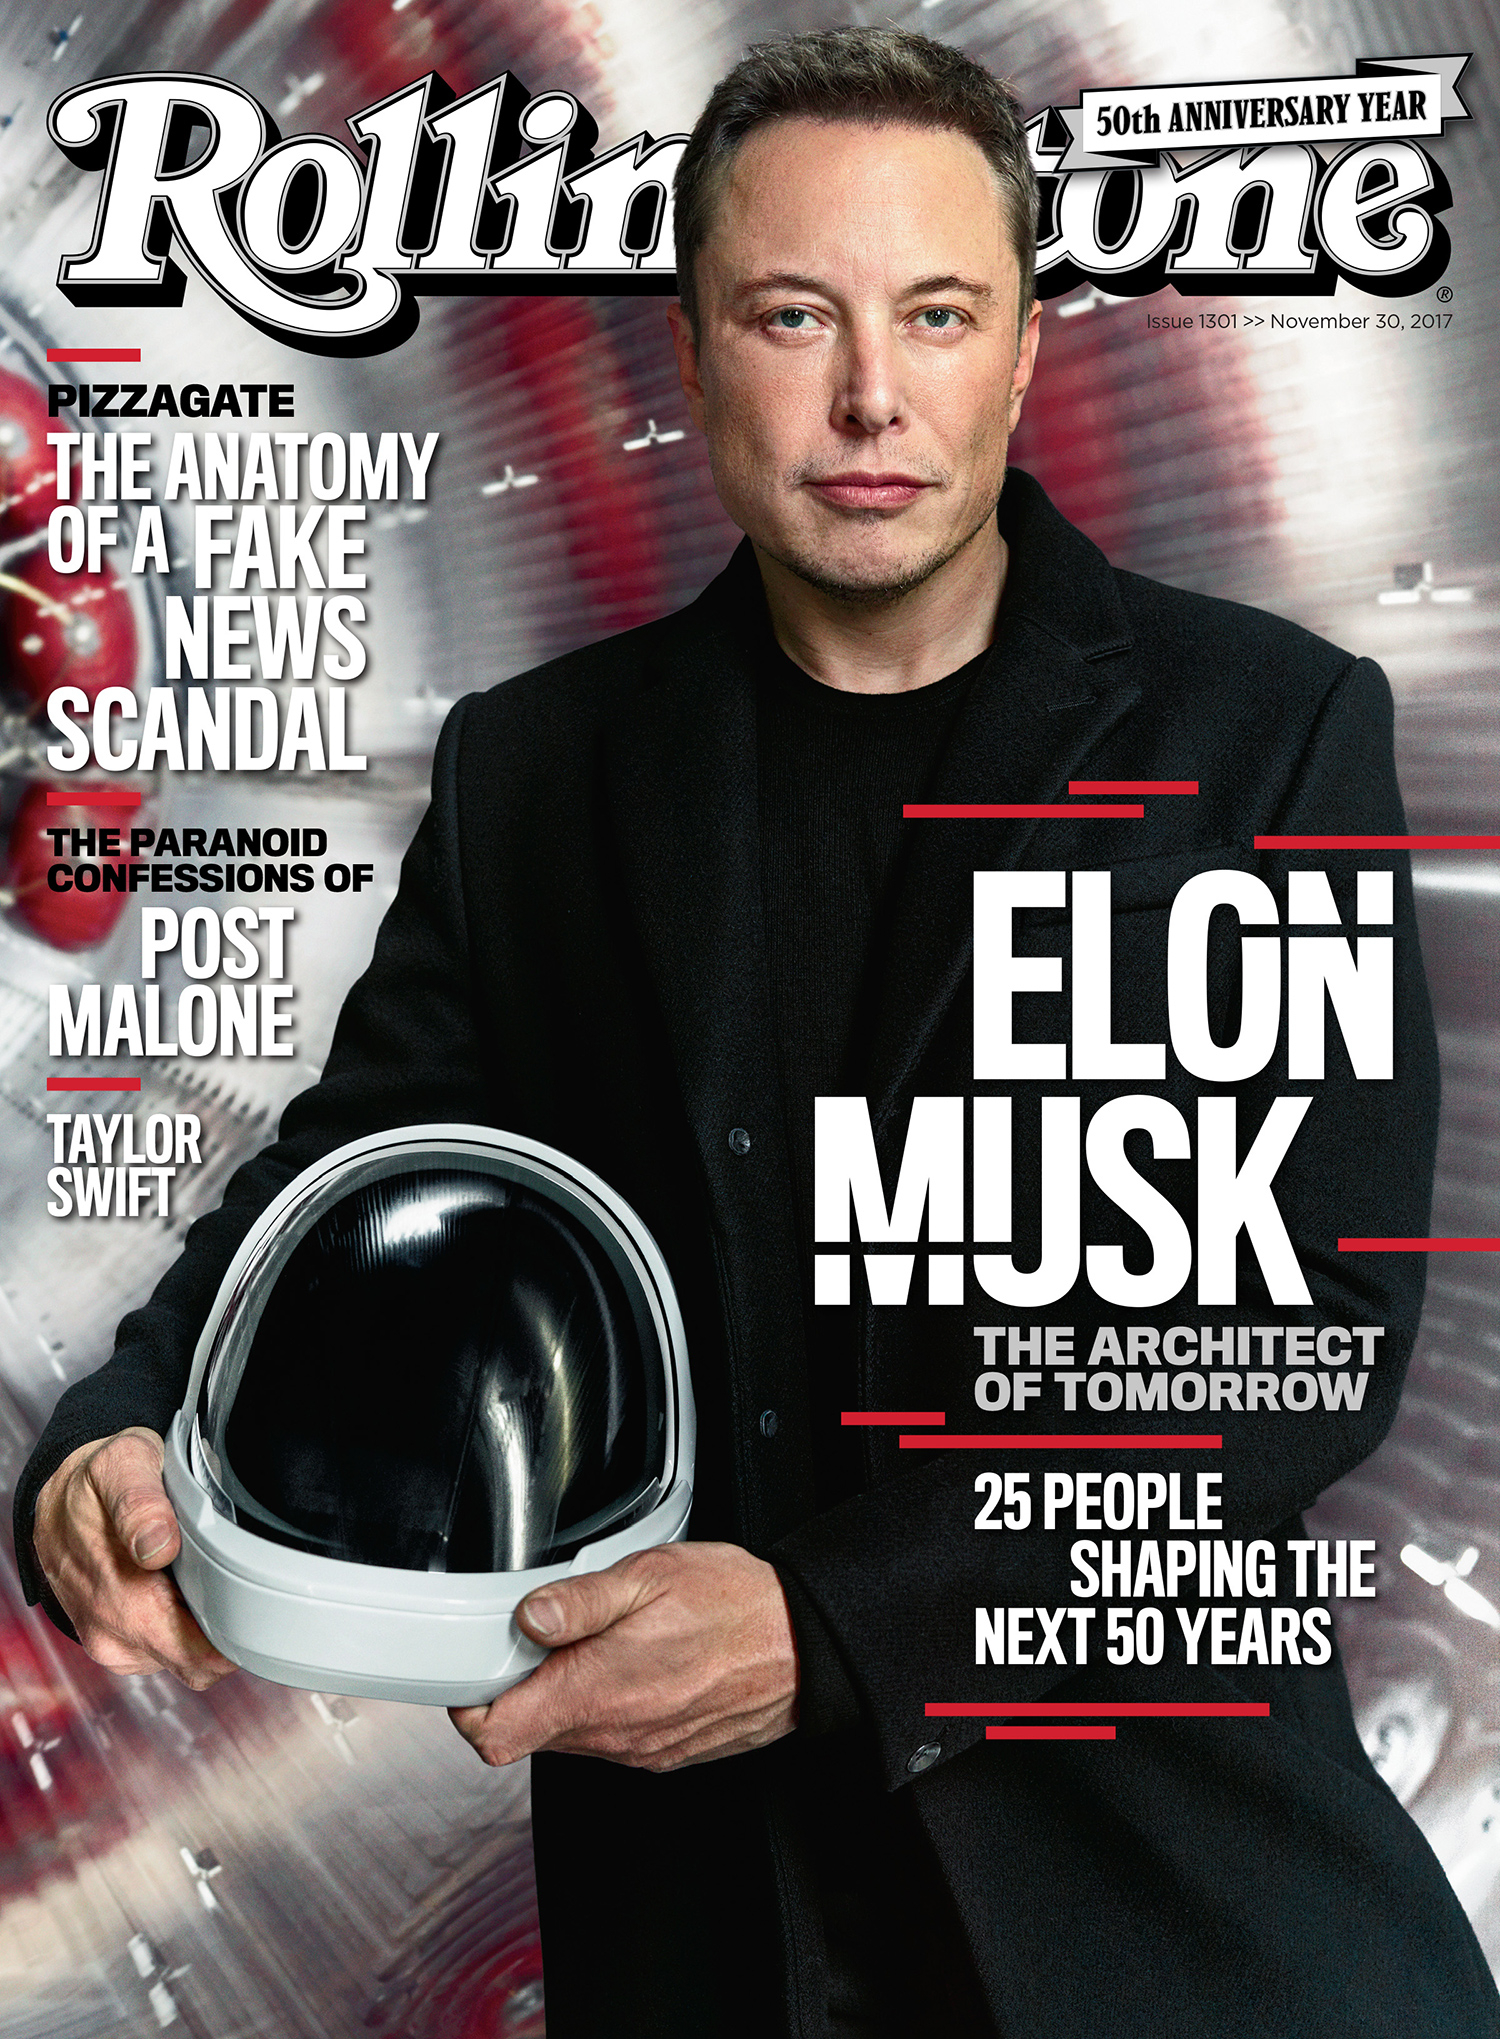 Elon Musk: Inventor's Plans for Outer Space, Cars, Finding Love